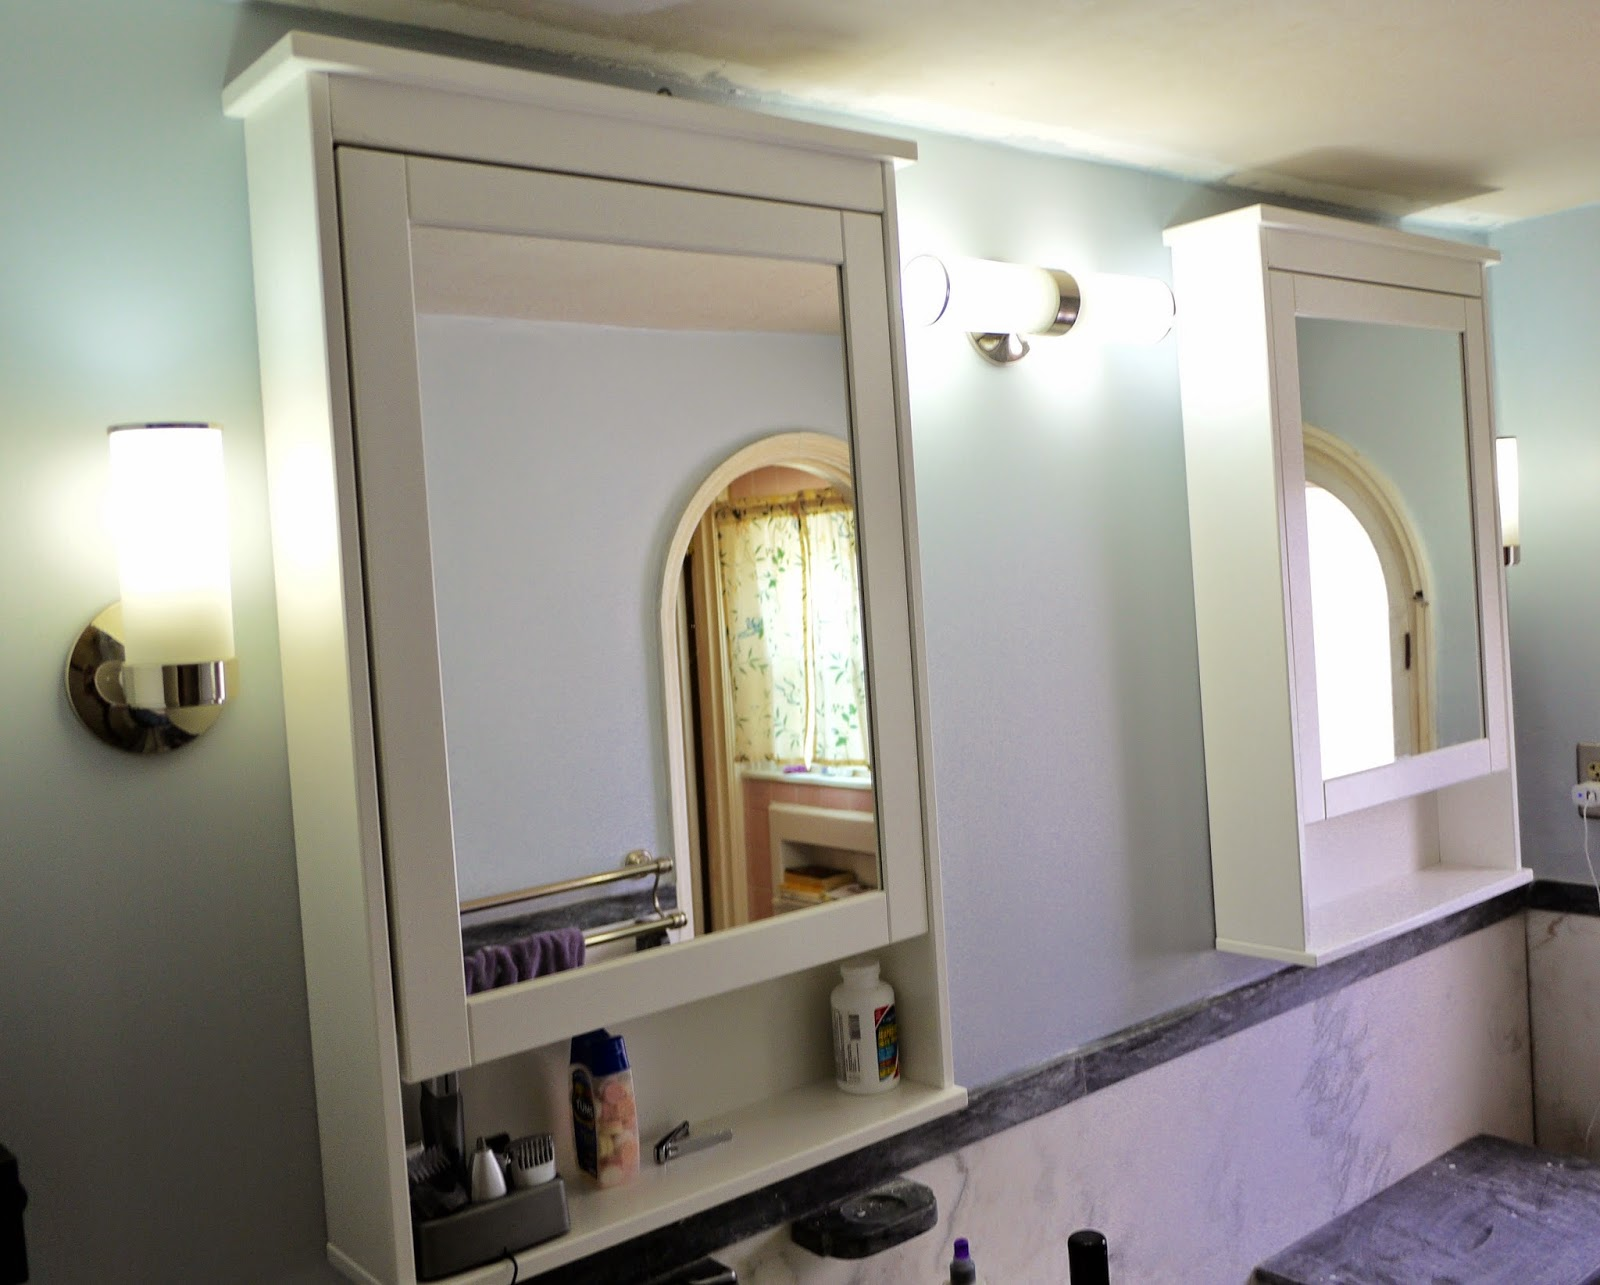 Budget Bathroom Renovation Part 1a: Medicine Cabinets And Mirrors:  Destruction